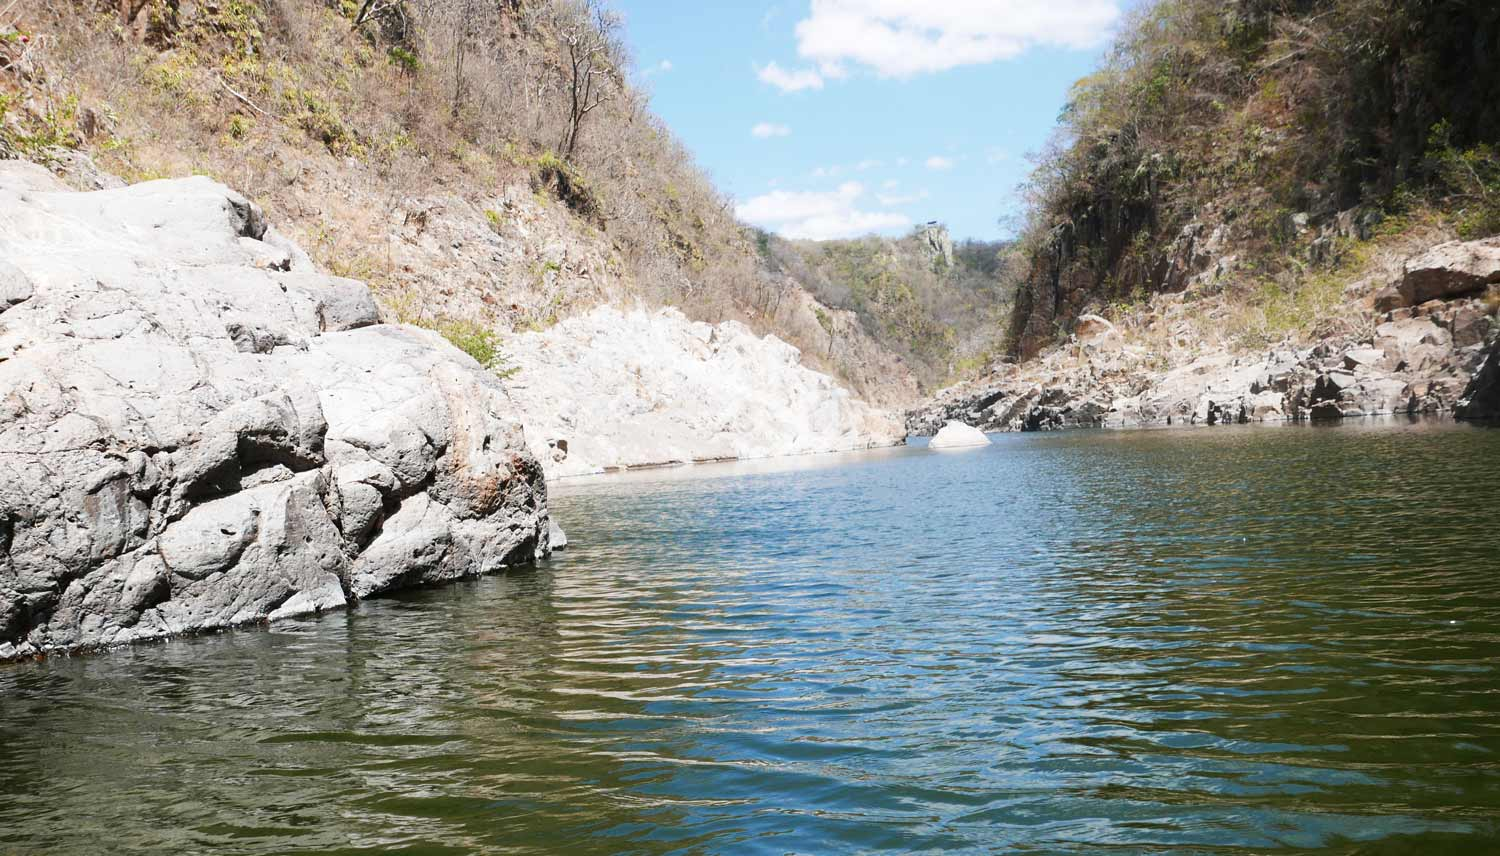 After lots of swimming a canoe takes you to the exit of Somoto canyon